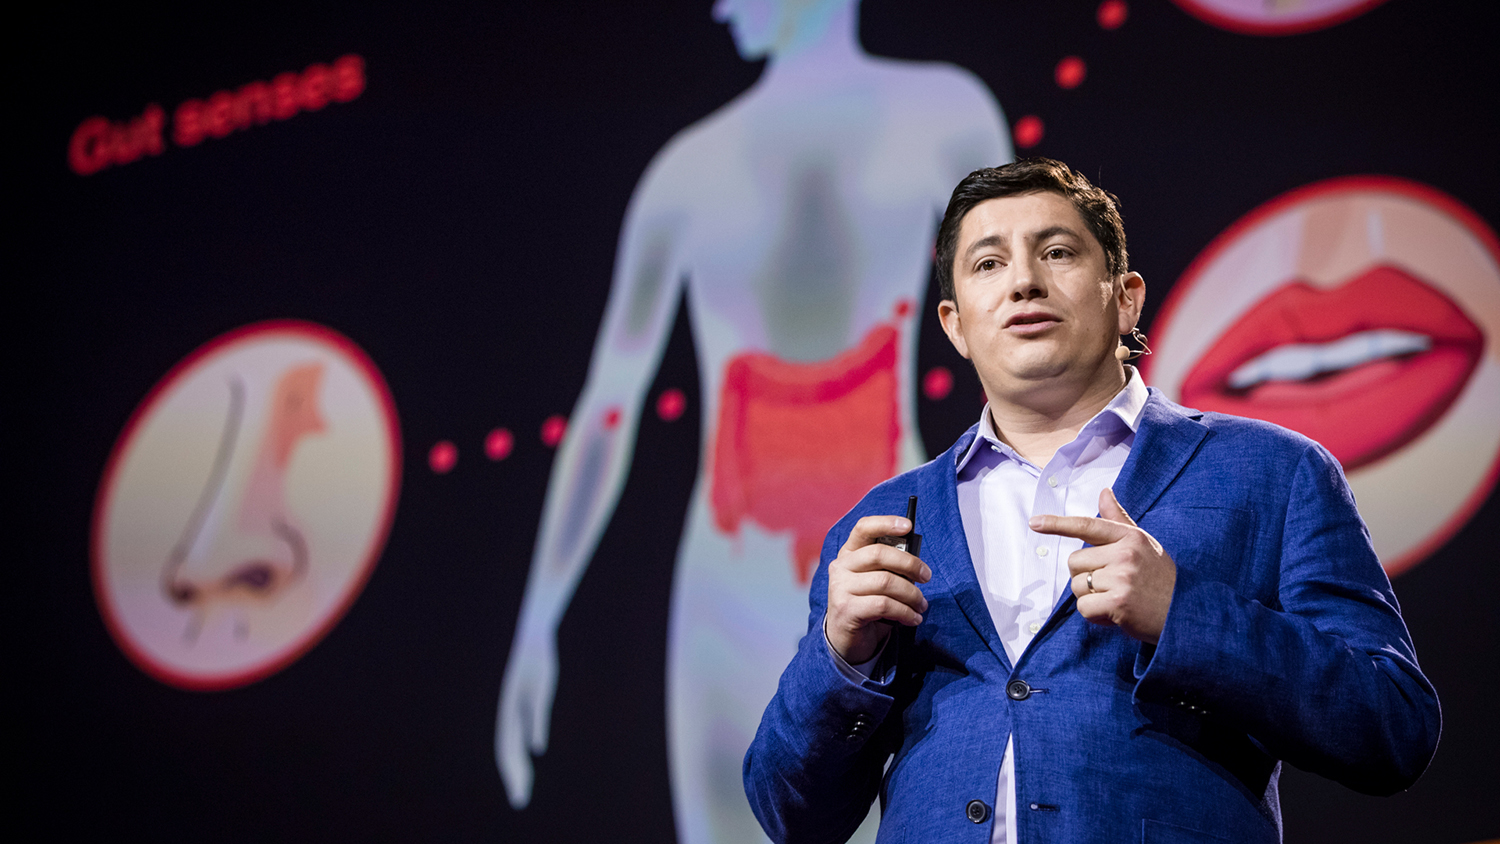 CALS Poultry Science Alum Diego Bohorquez Gives a TED Talk